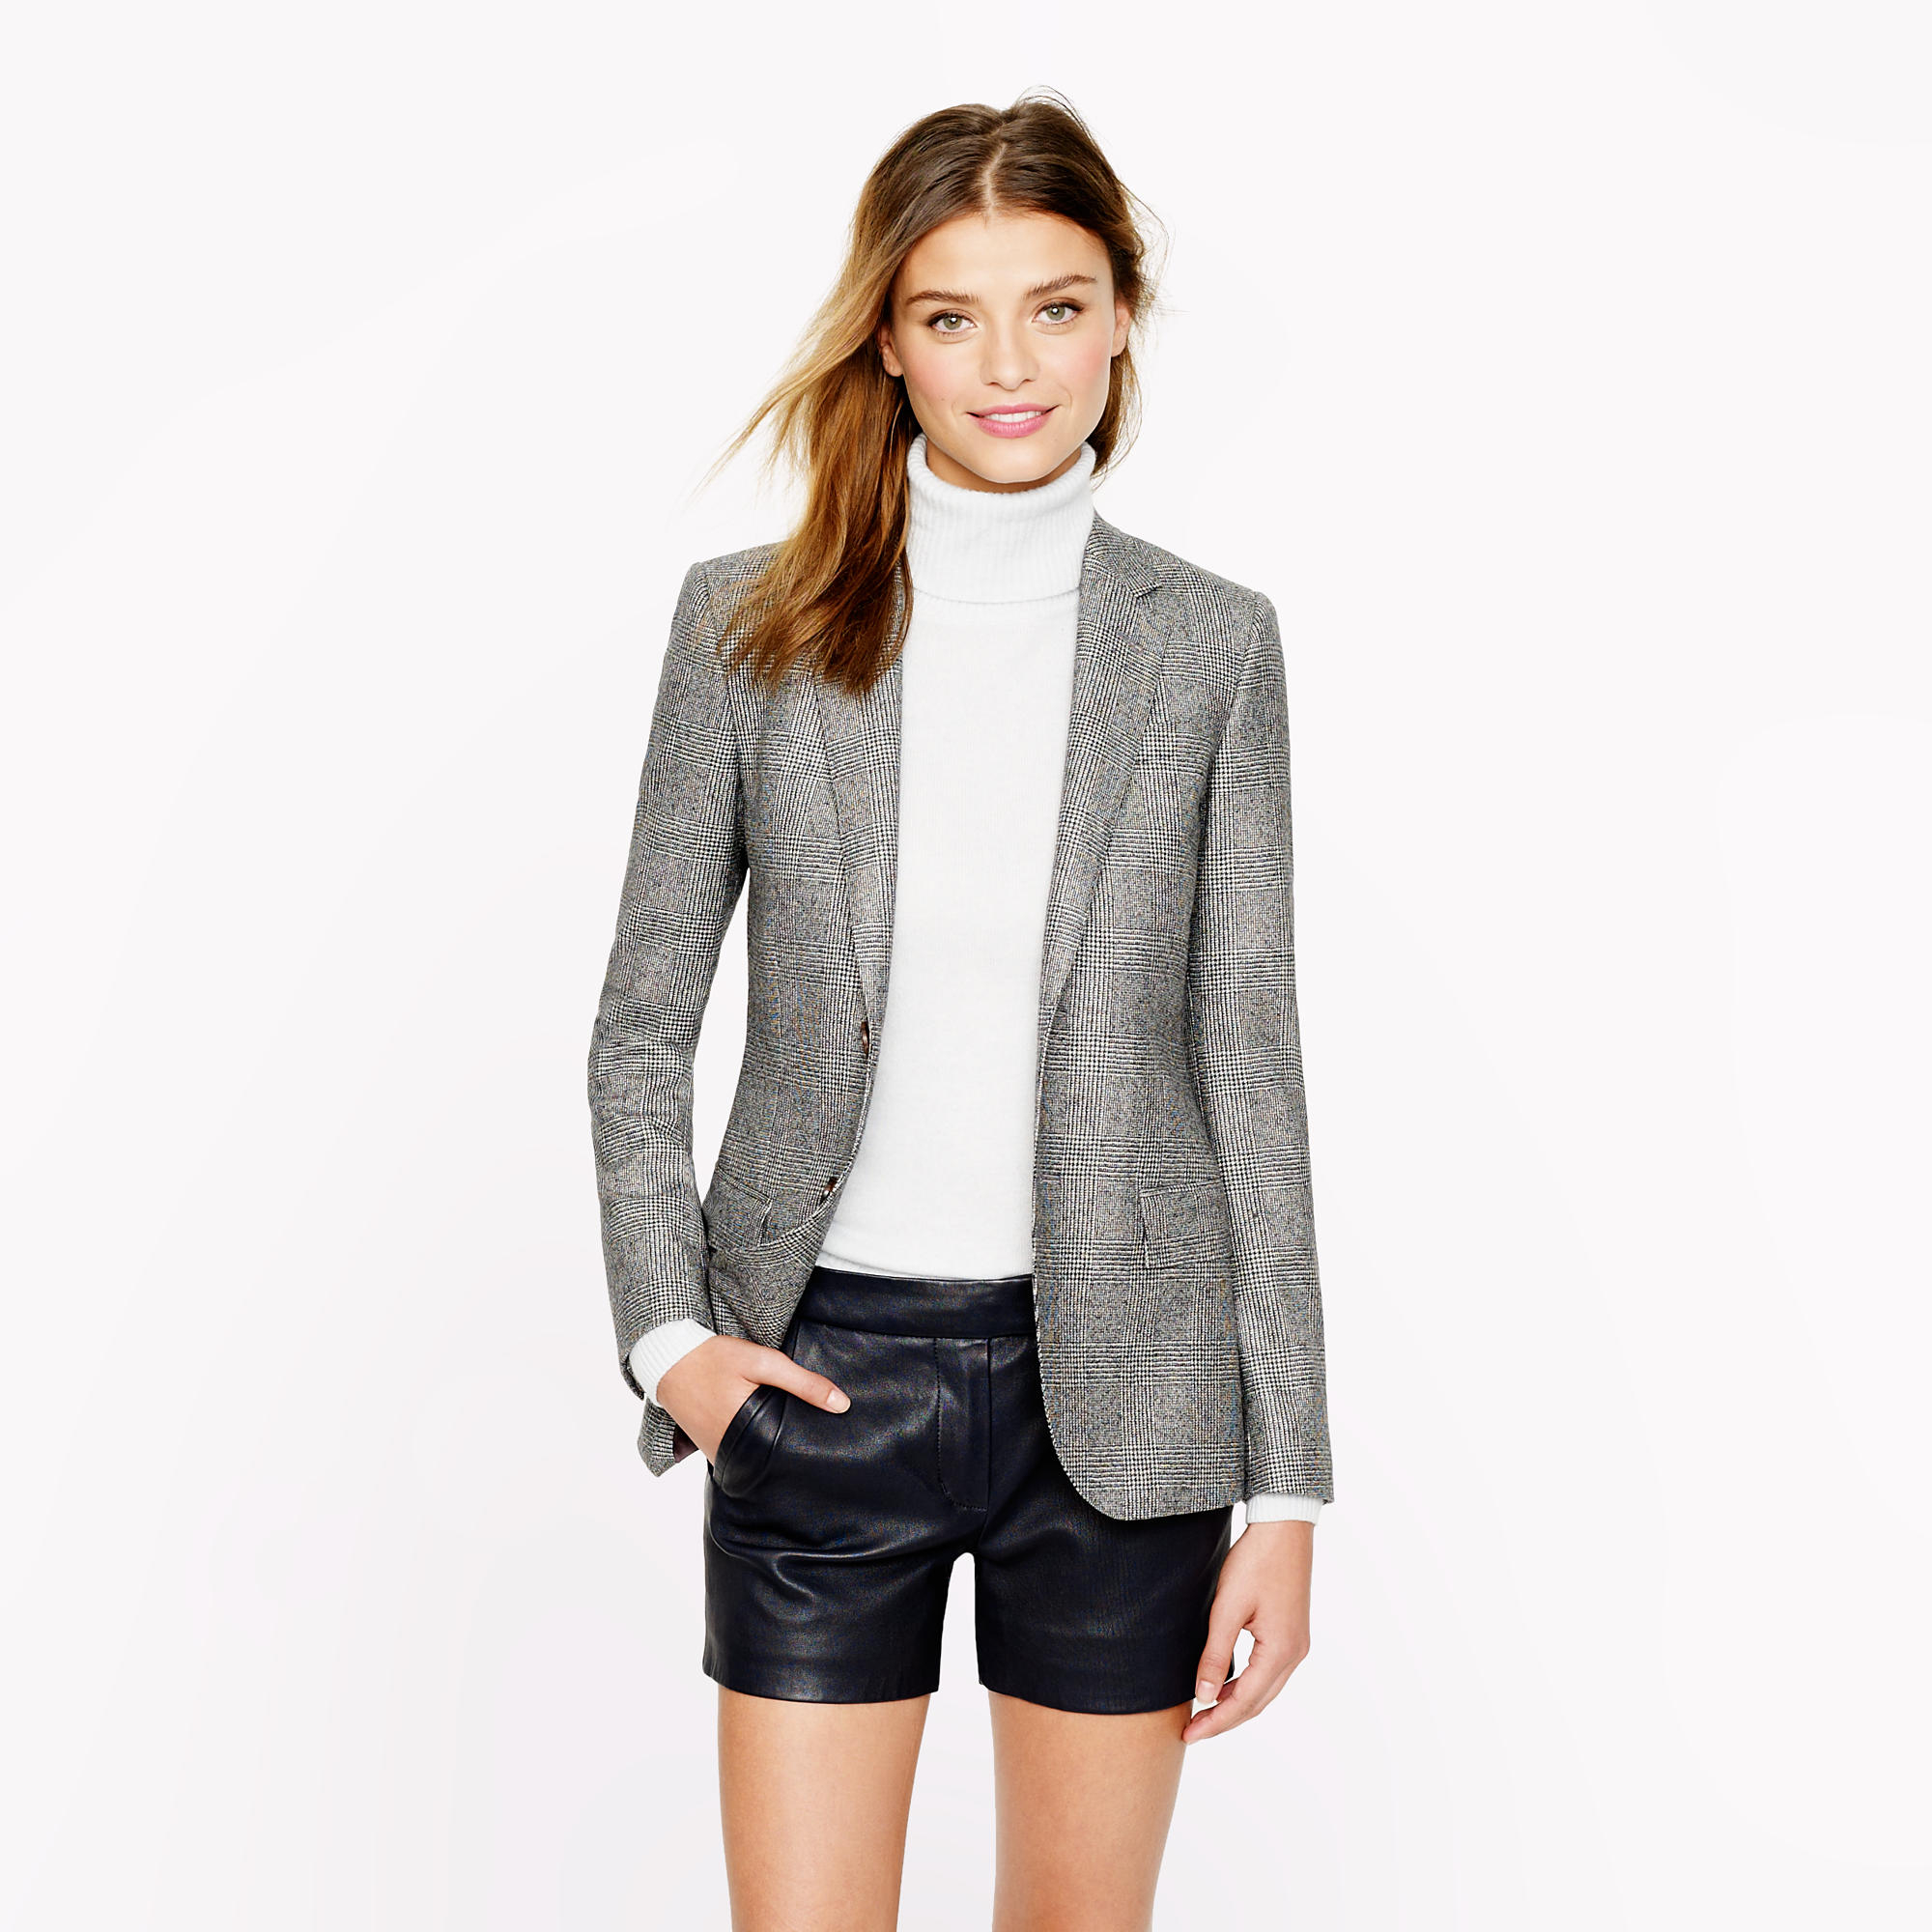 Find a great selection of women's blazers & jackets at dvlnpxiuf.ga Shop top brands like Vince Camuto, Topshop, Lafayette and more. Free shipping and returns.